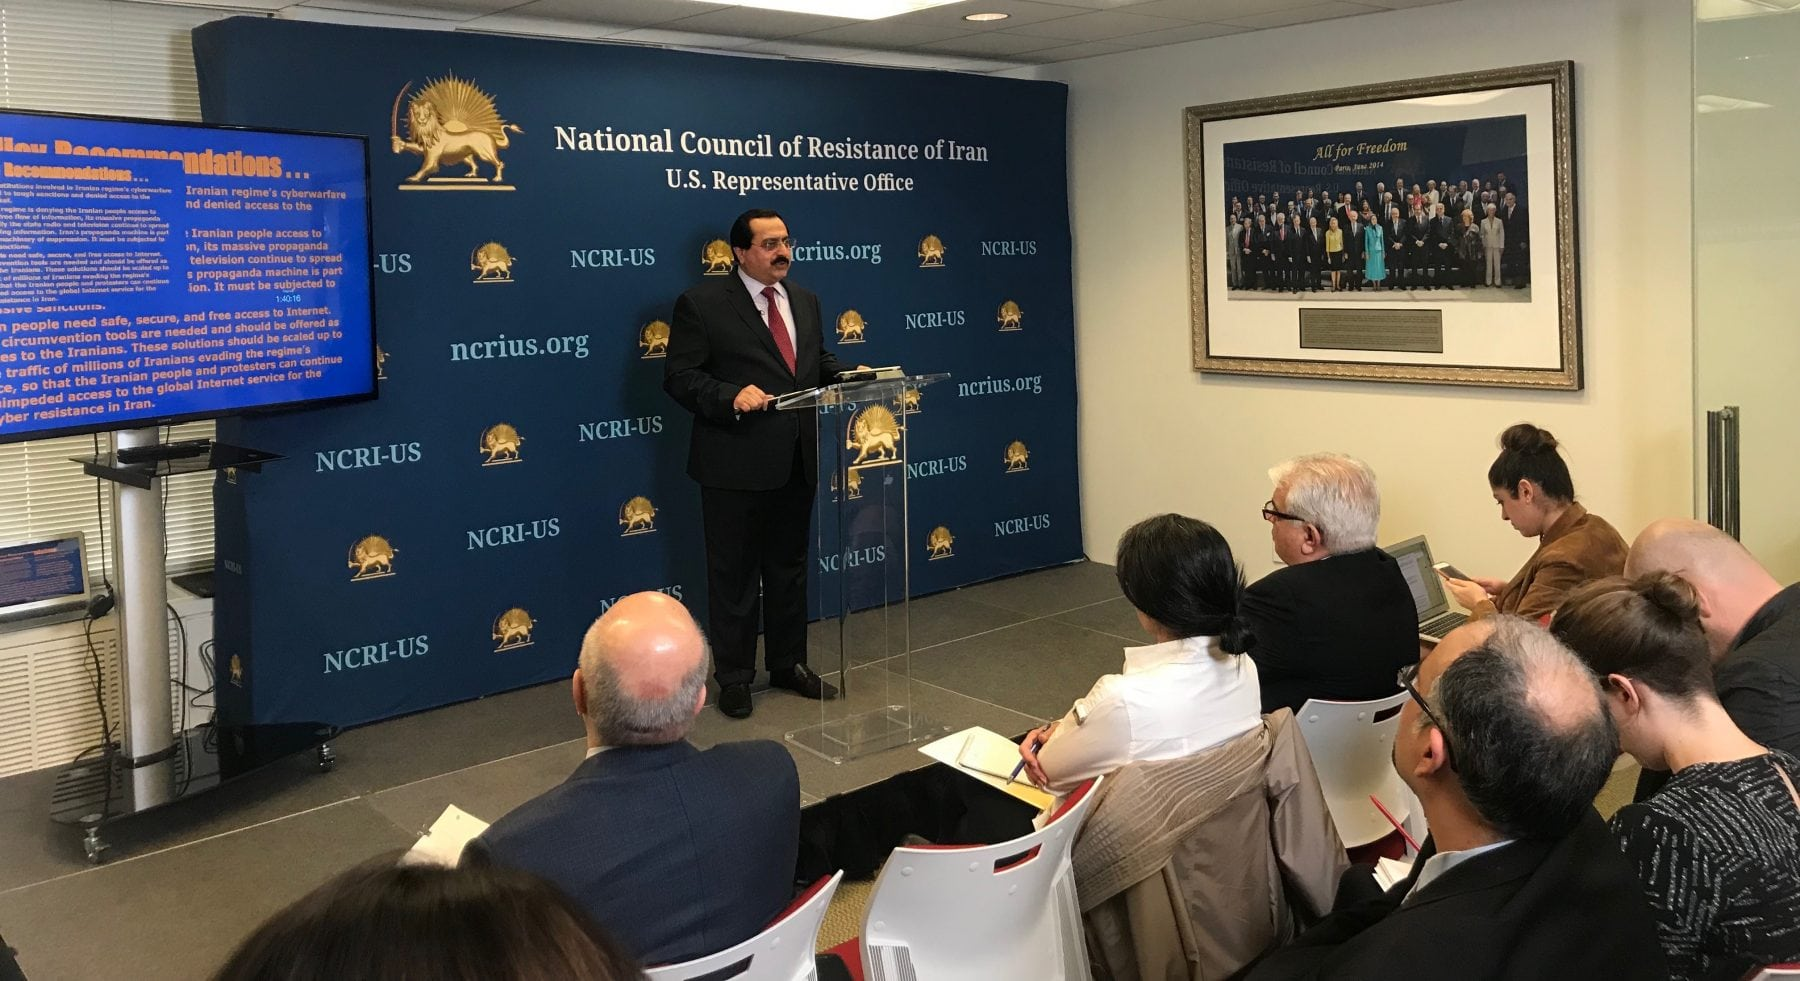 NCRIUS - Cybersecurity and Cyberwarfare Press Conference